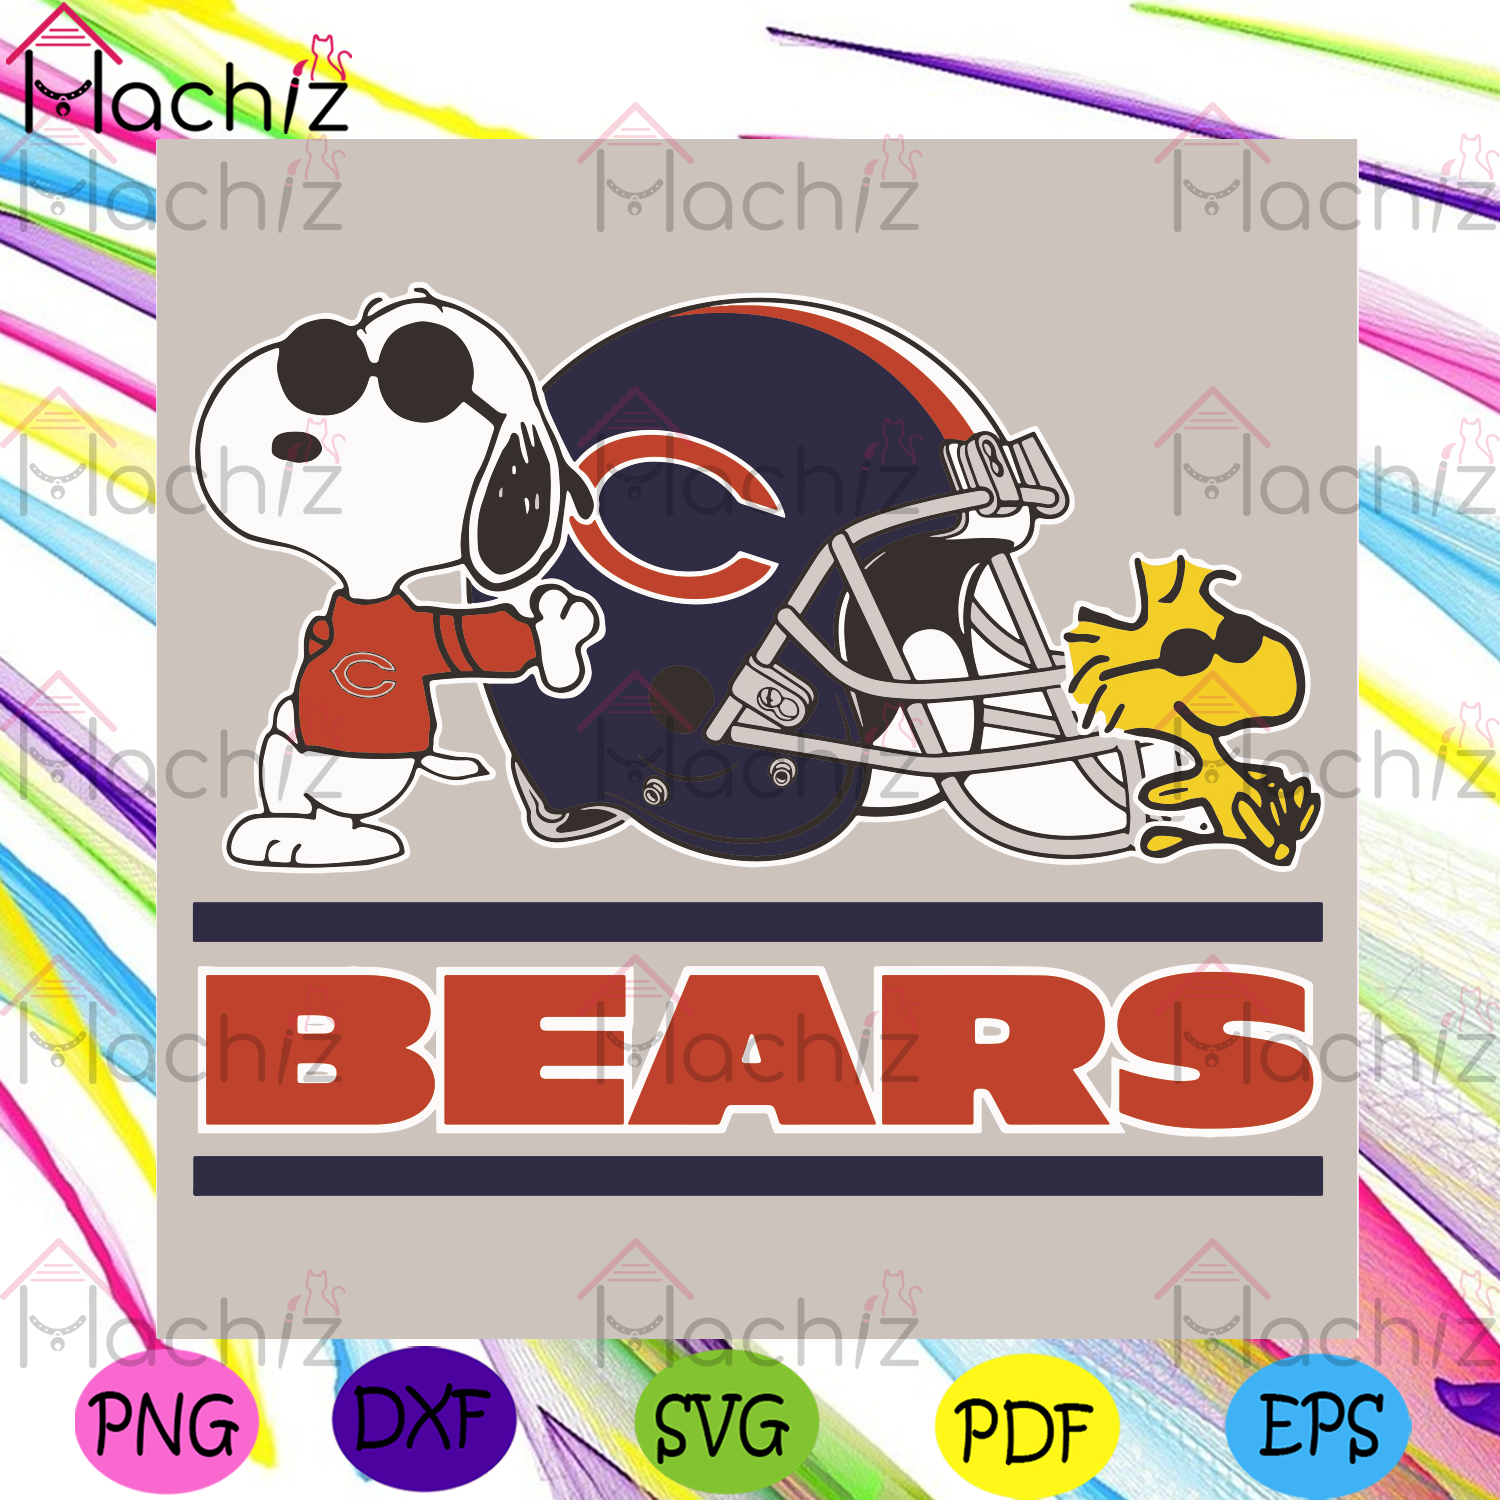 Chicago Bears Snoopy Woodstock Svg, Sport Svg, Chicago Bears Svg, Chicago Bears Football Team Svg, Chicago Bears NFL Svg, Chicago Bears Helmet Svg, Snoopy Svg, Chicago Bears Snoopy Svg, Woodstock Svg, NFL Svg